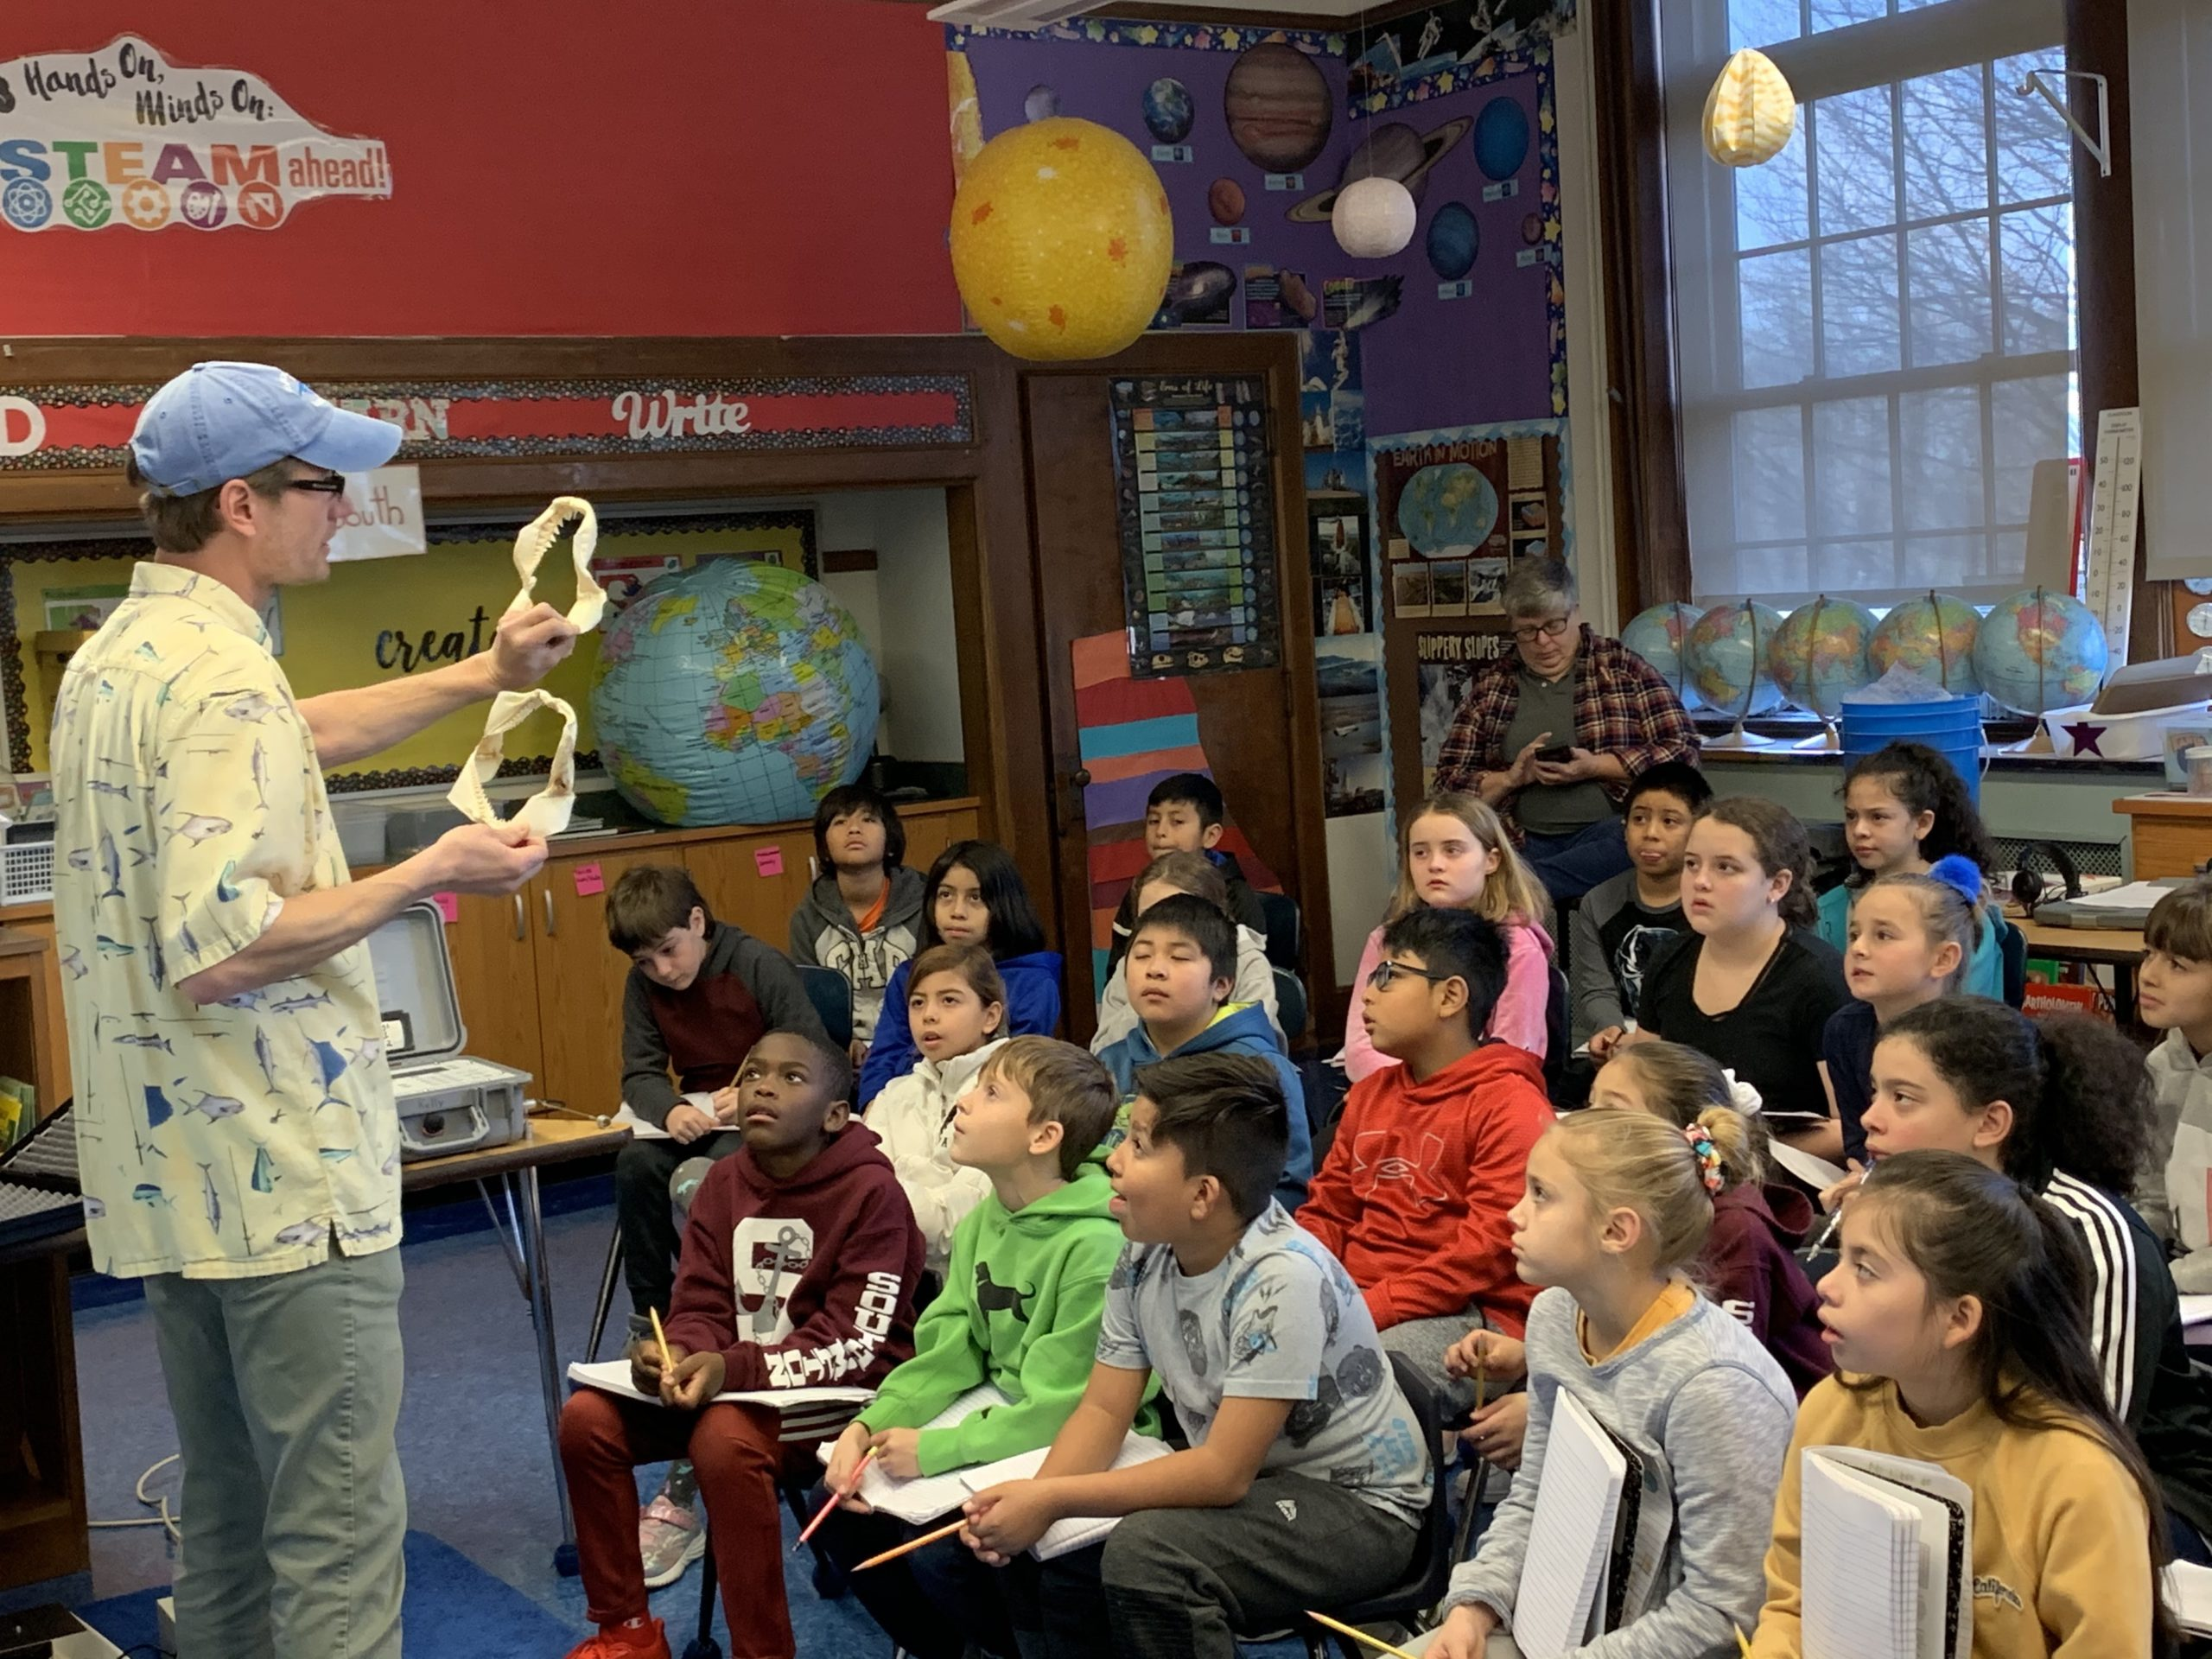 Southampton High School marine science teacher Gregory Metzger spoke to third- and fourth-grader about his research on sharks.